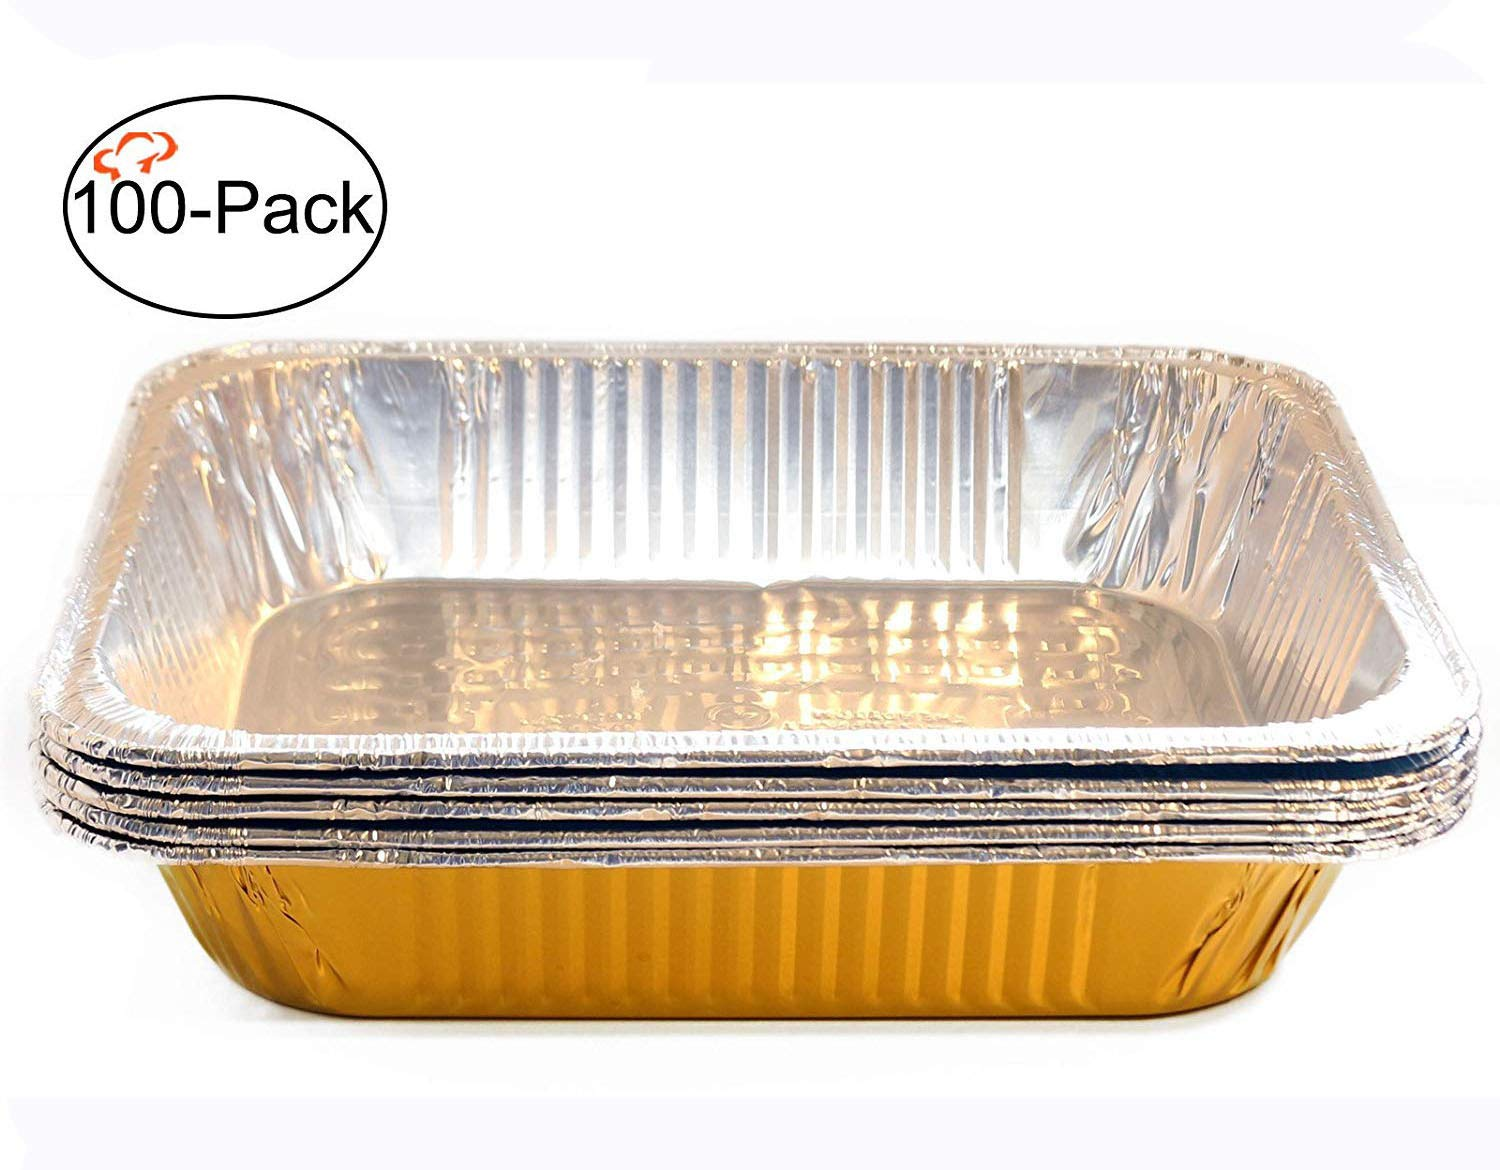 Tiger Chef Chafing Pans 100-Pack Gold Disposable Aluminum Foil Steam Table Deep Baking Pans, Half Size - 12.75in x 10.38in x 2.5in